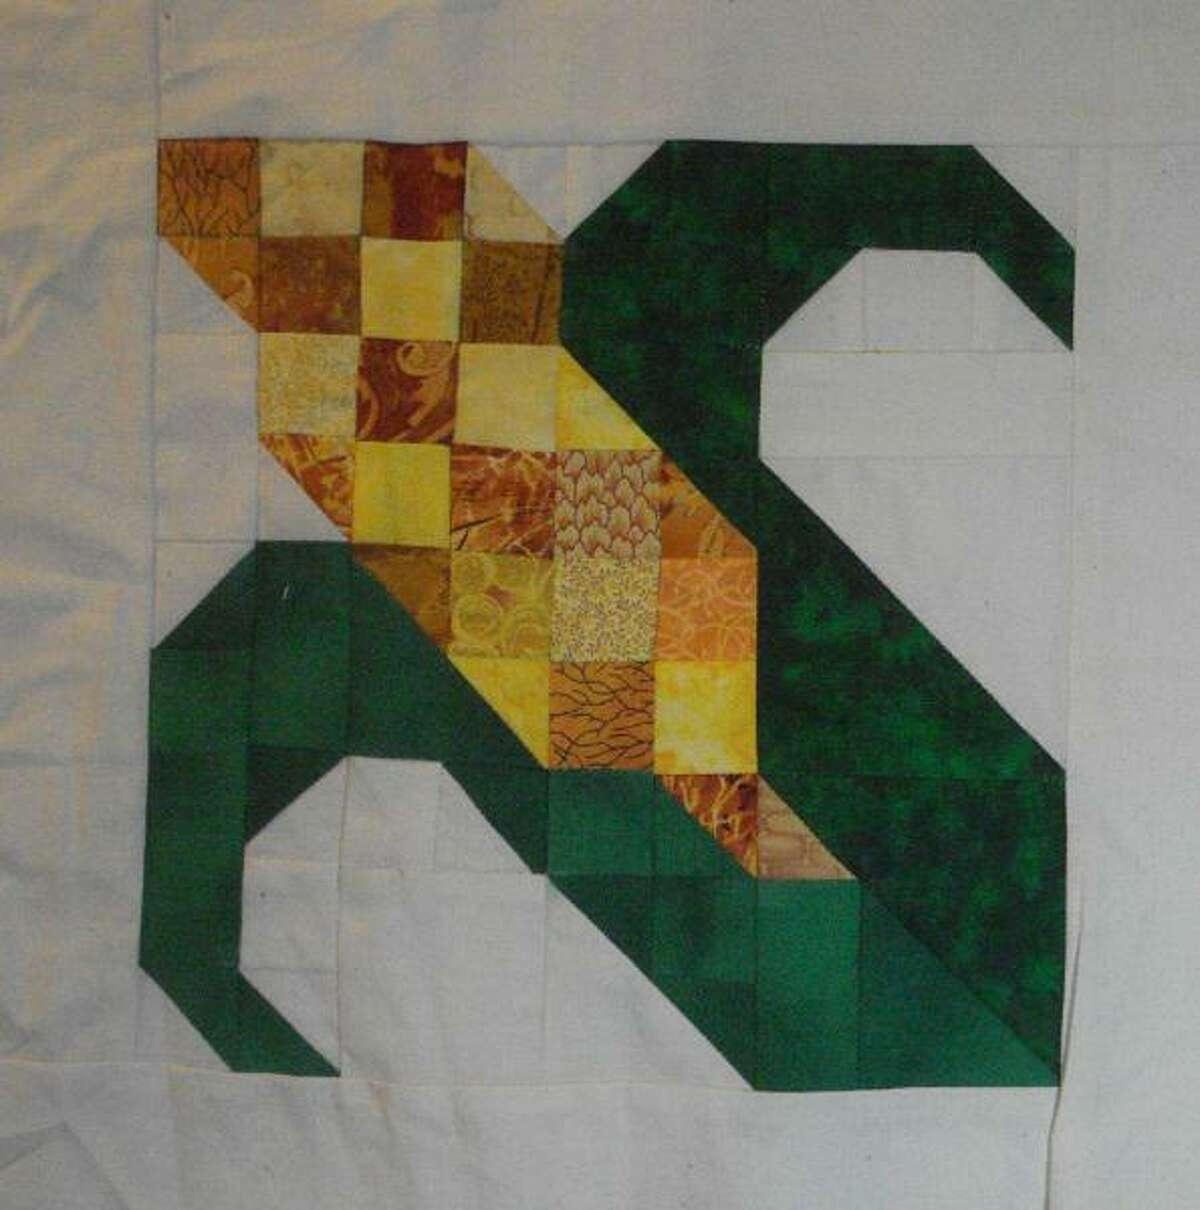 One of the new patterns to be showcased as part of the New Milford Barn Quilt Trail is the corn pattern, to be displayed at the Larson Barn at New Milford High School. The barn, built in 1900 as a dairy barn by Frank Larson, was later used for agriculture. Starting in 1957, the Larsons were known for their sweet corn, which they sold at a farm stand along Route 7.